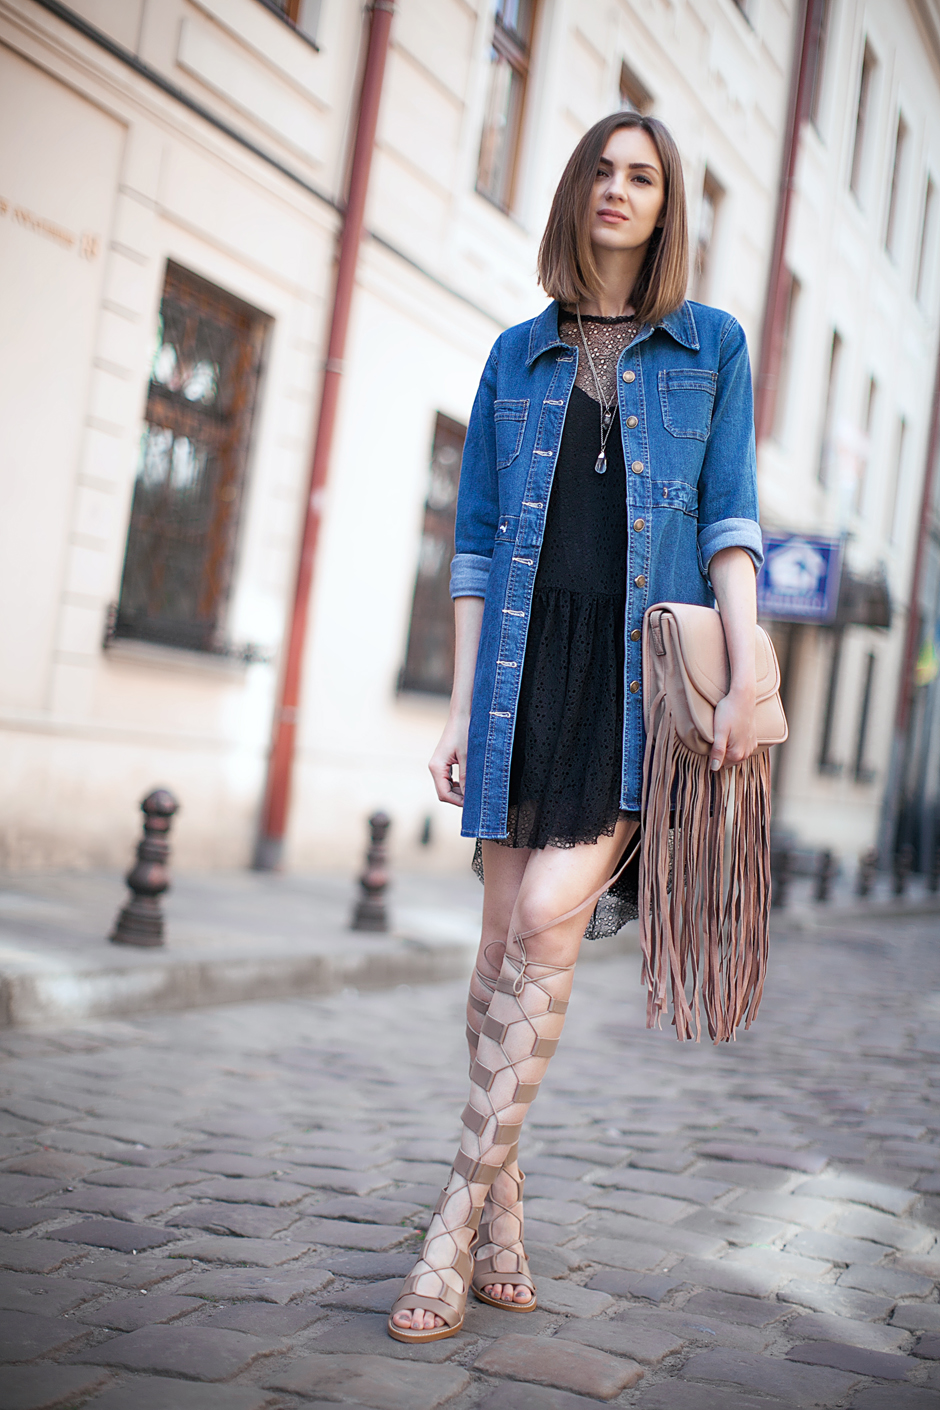 gladiator-sandals-streetstyle-outfit-suede-denim